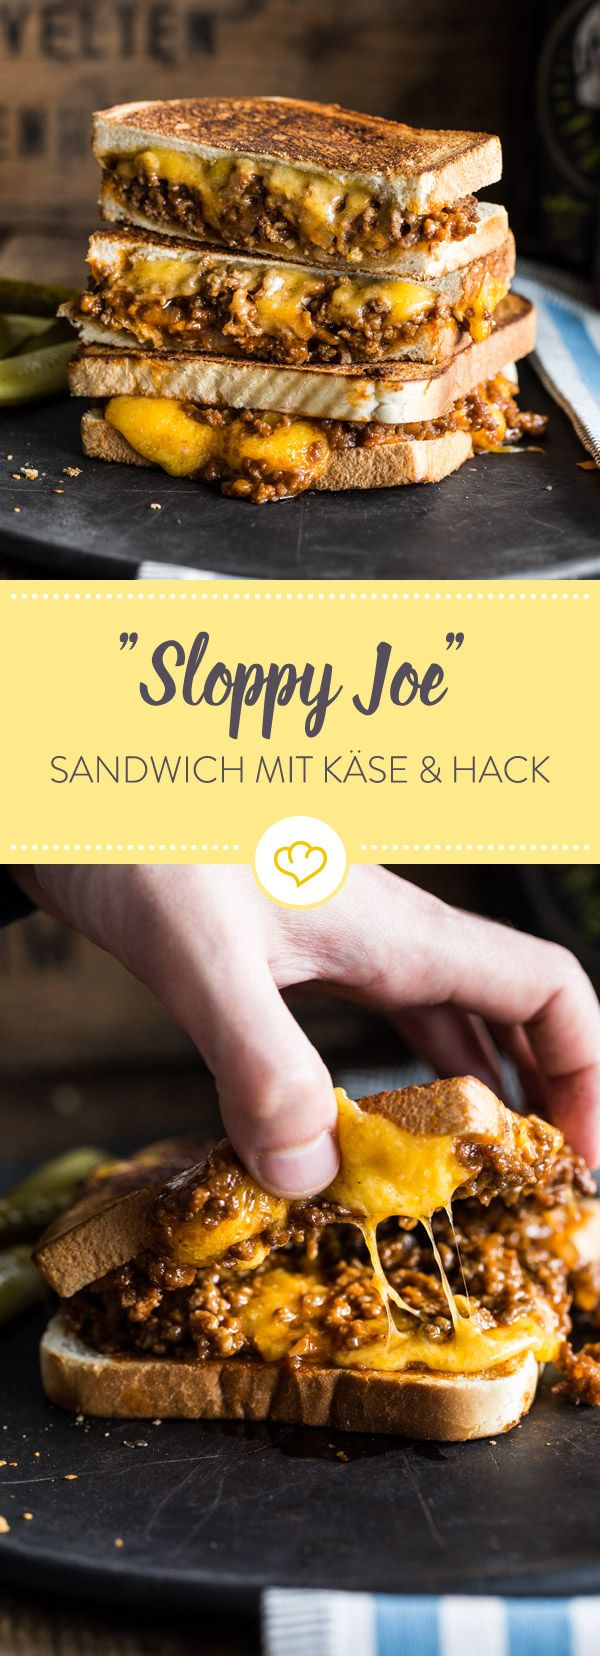 Sloppy Joe – Gegrilltes Sandwich mit Hack & Cheddar #essenundtrinken